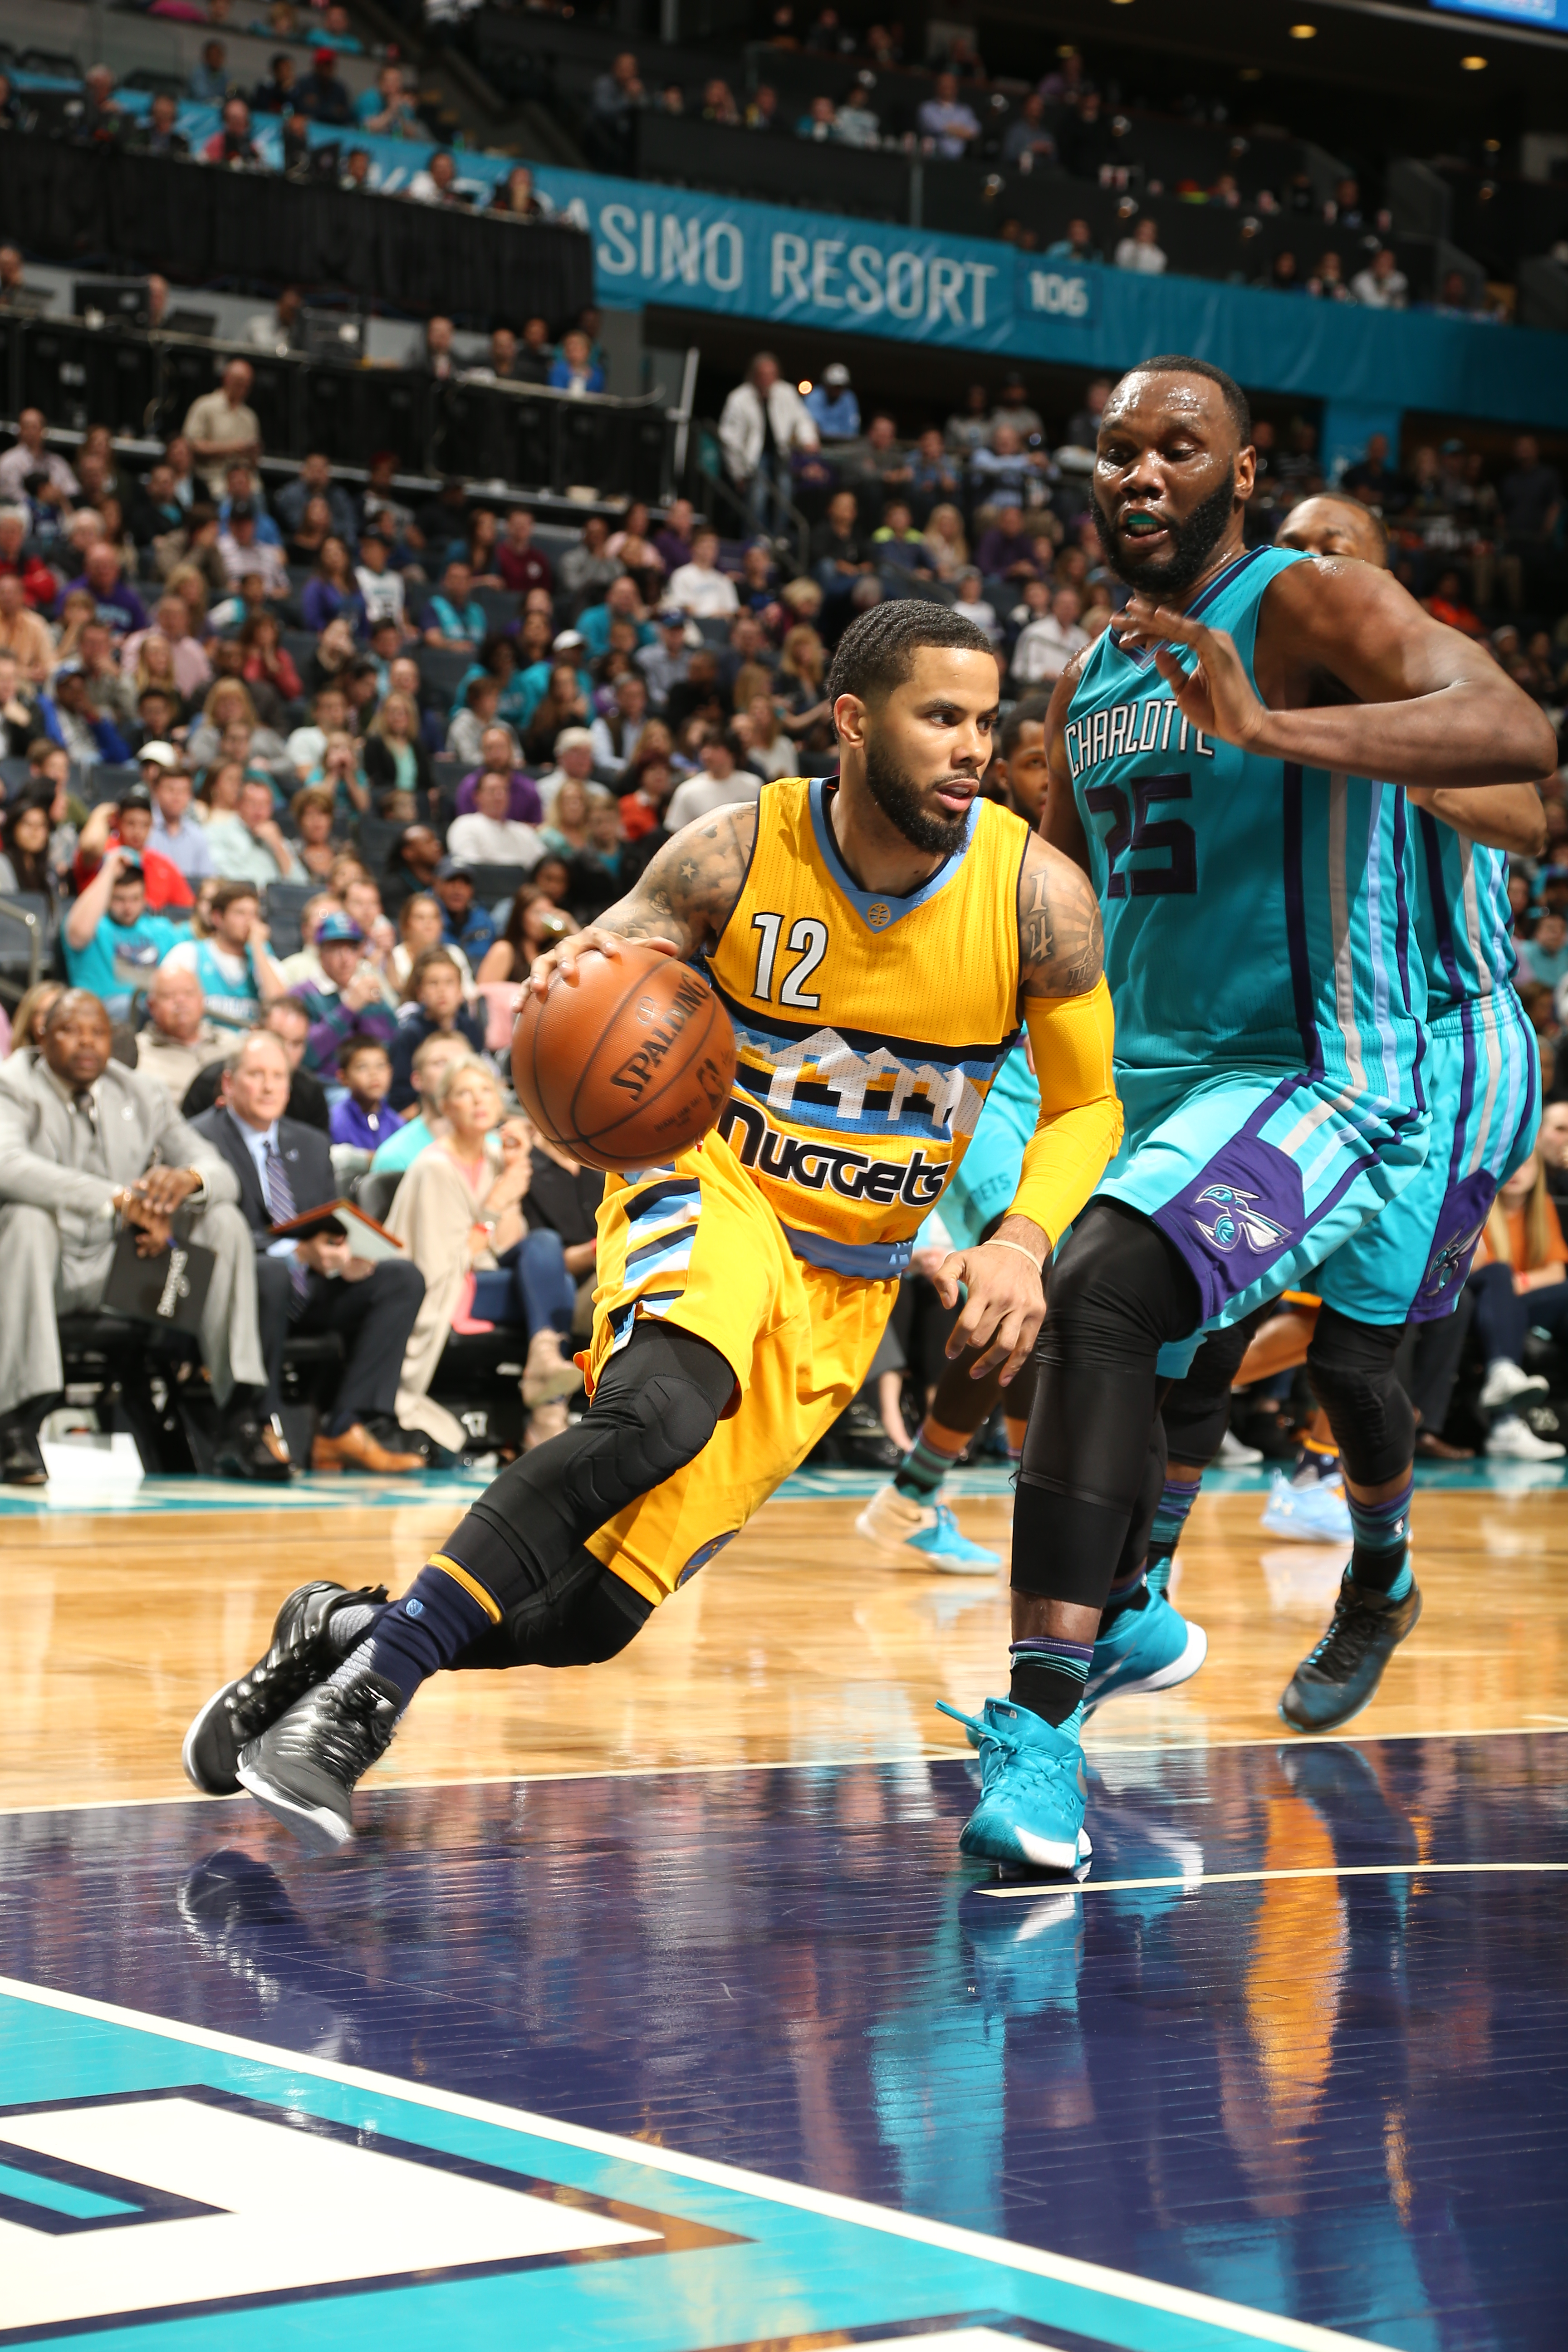 CHARLOTTE, NC - MARCH 19:  D.J. Augustin #12 of the Denver Nuggets handles the ball against the Charlotte Hornets on March 19, 2016 at Time Warner Cable Arena in Charlotte, North Carolina. (Photo by Kent Smith/NBAE via Getty Images)